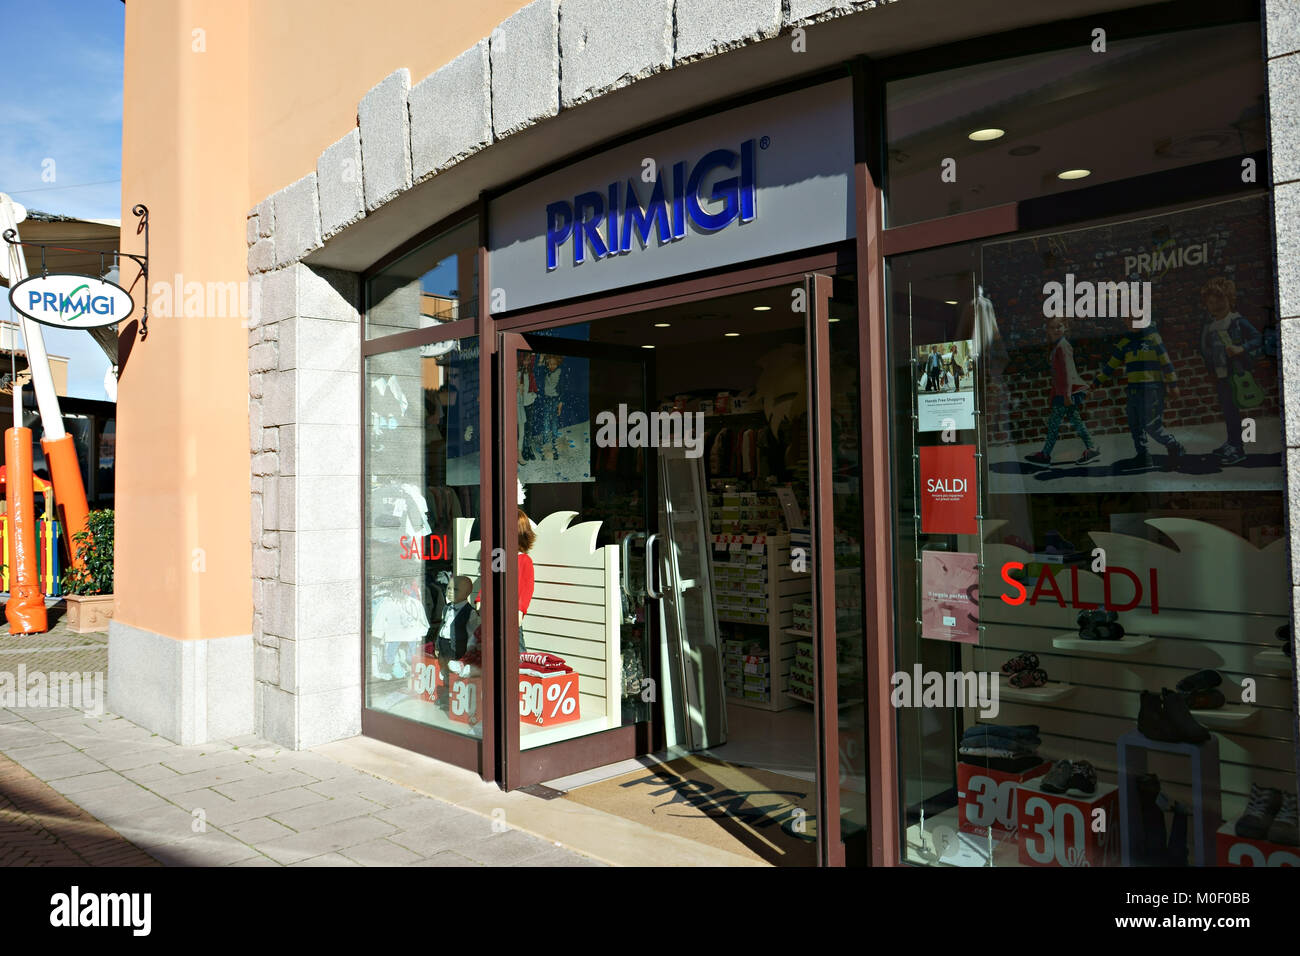 Saldi Stock Photos & Saldi Stock Images - Alamy